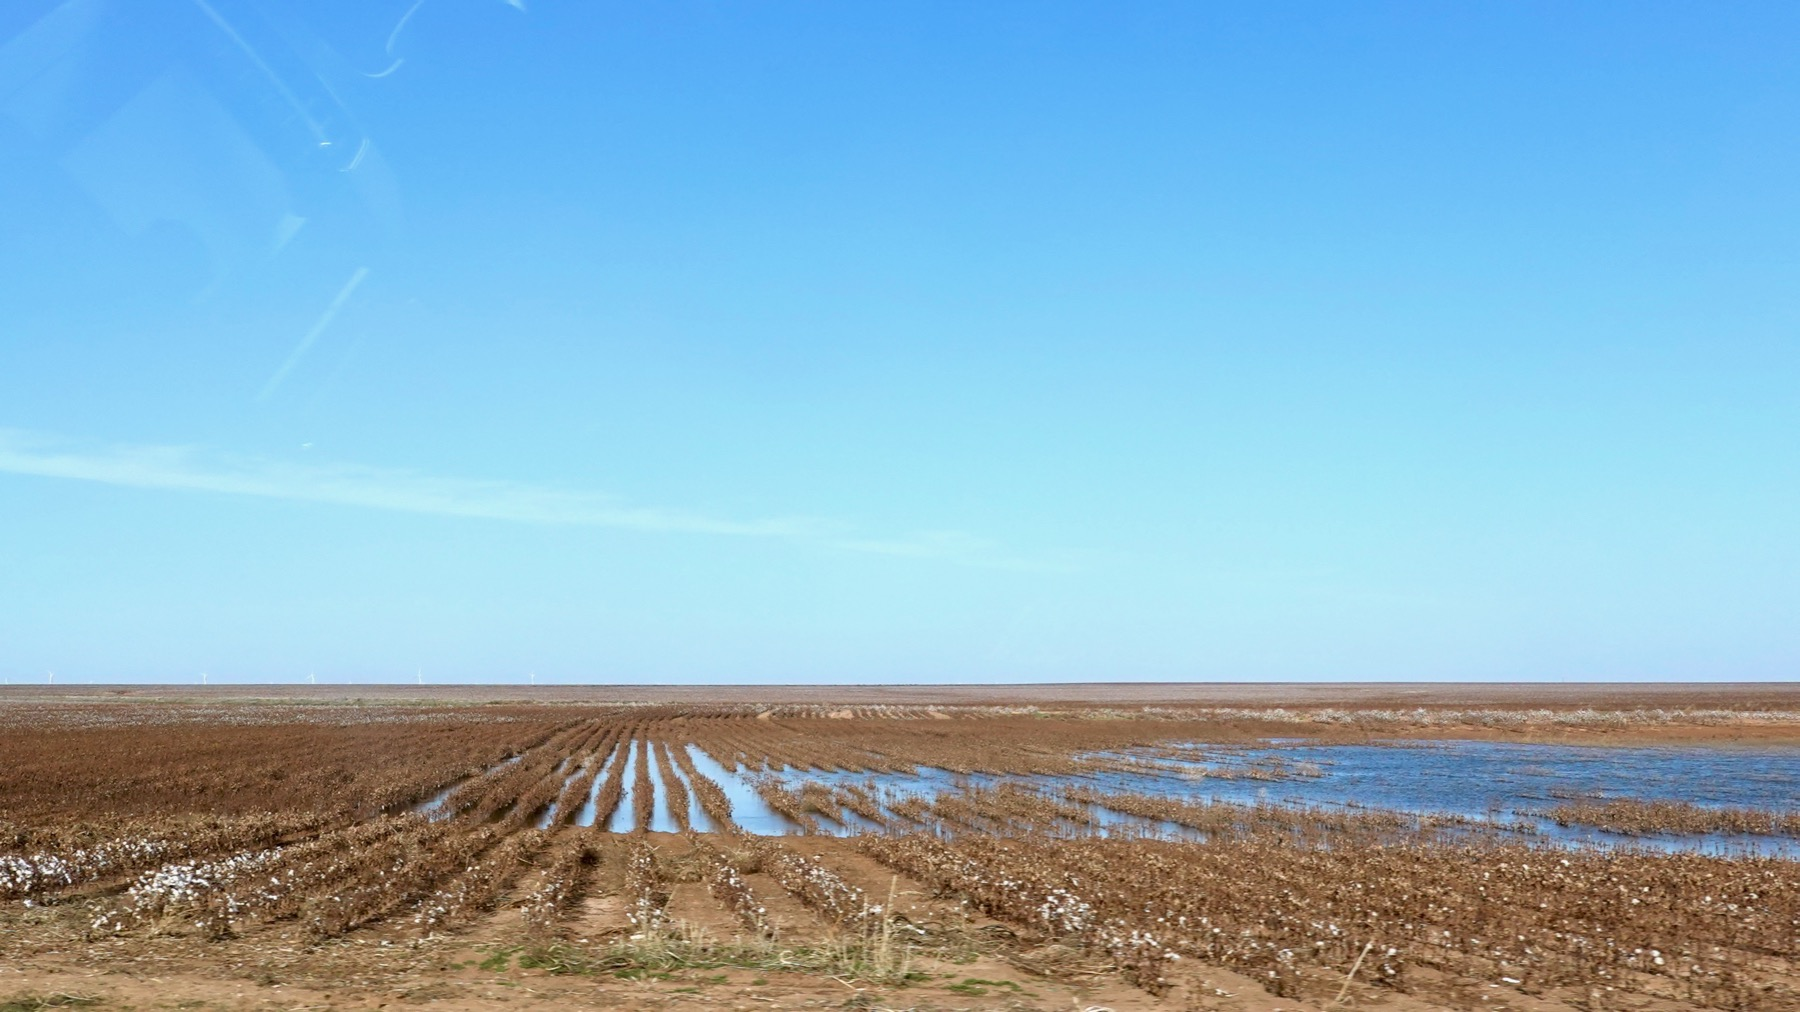 Cotton rows flooded